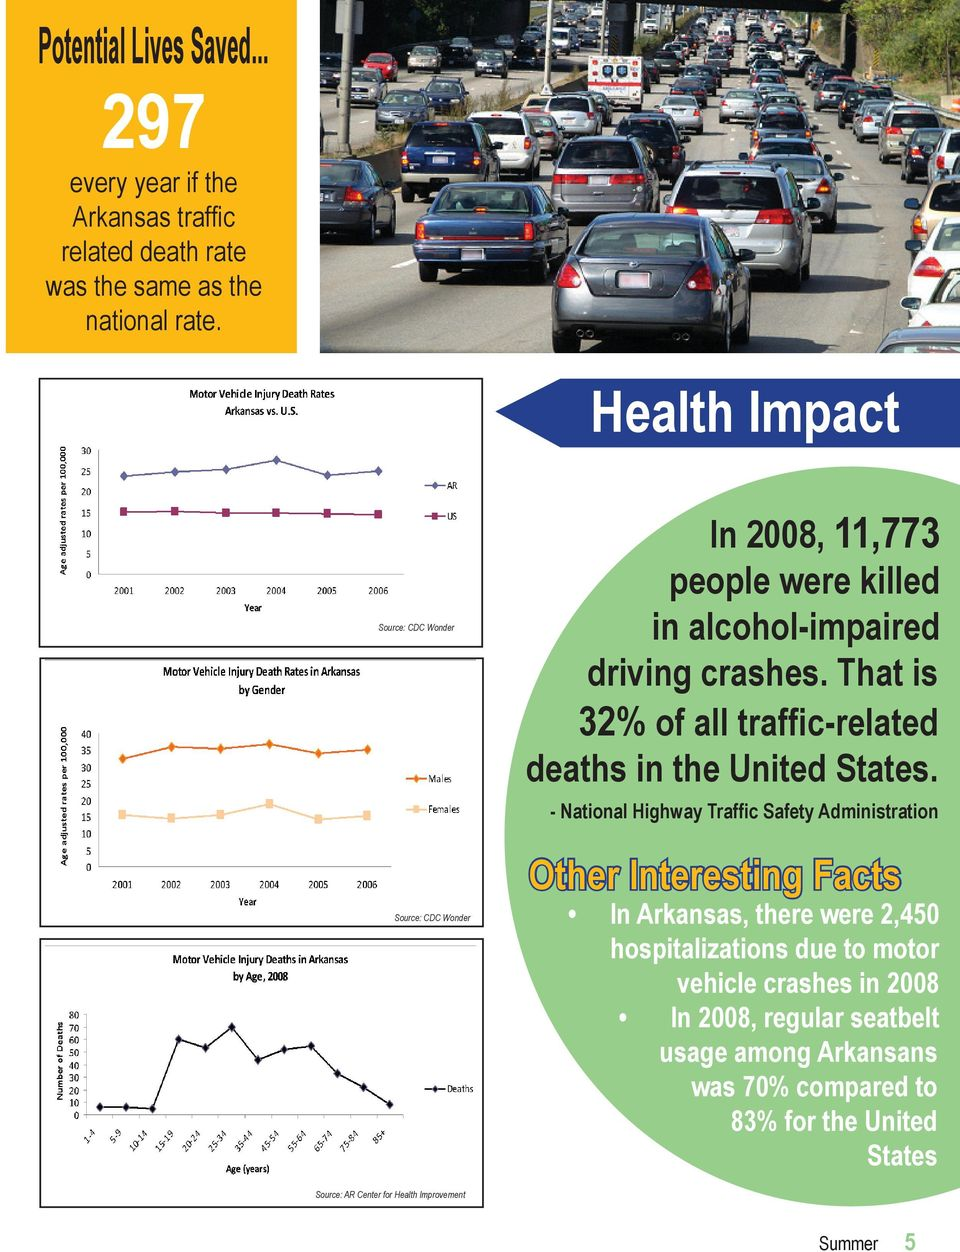 That is 32% of all traffic-related deaths in the United States.